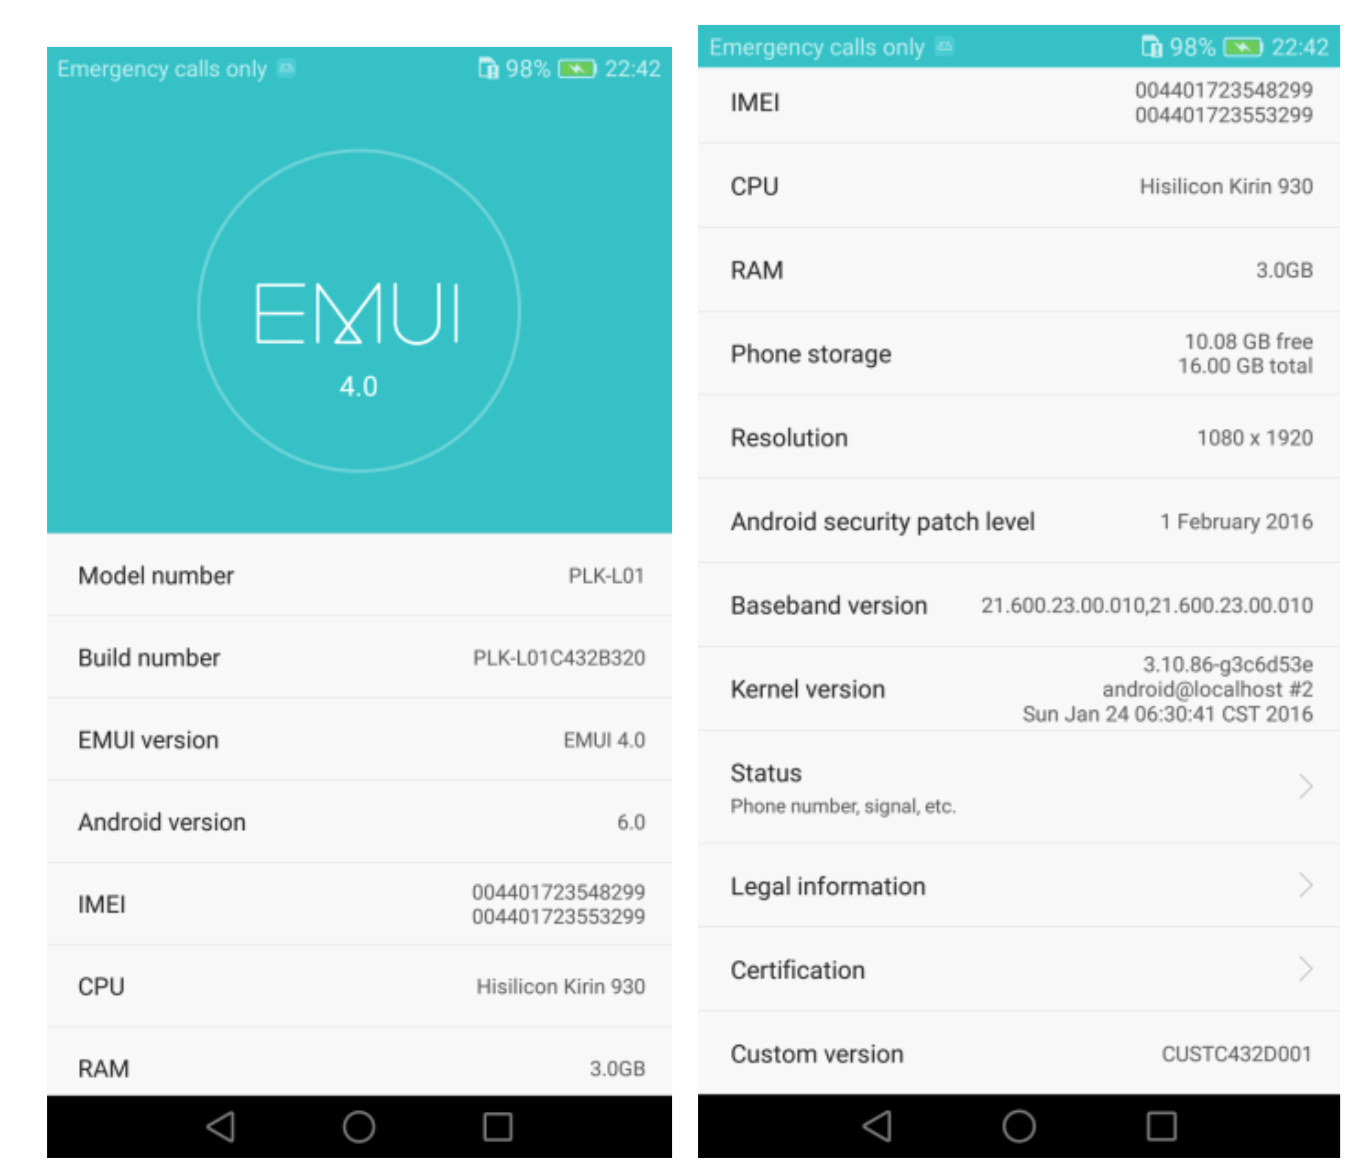 Tuto : Comment installer manuellement Marshmallow sur le Honor 7 ?